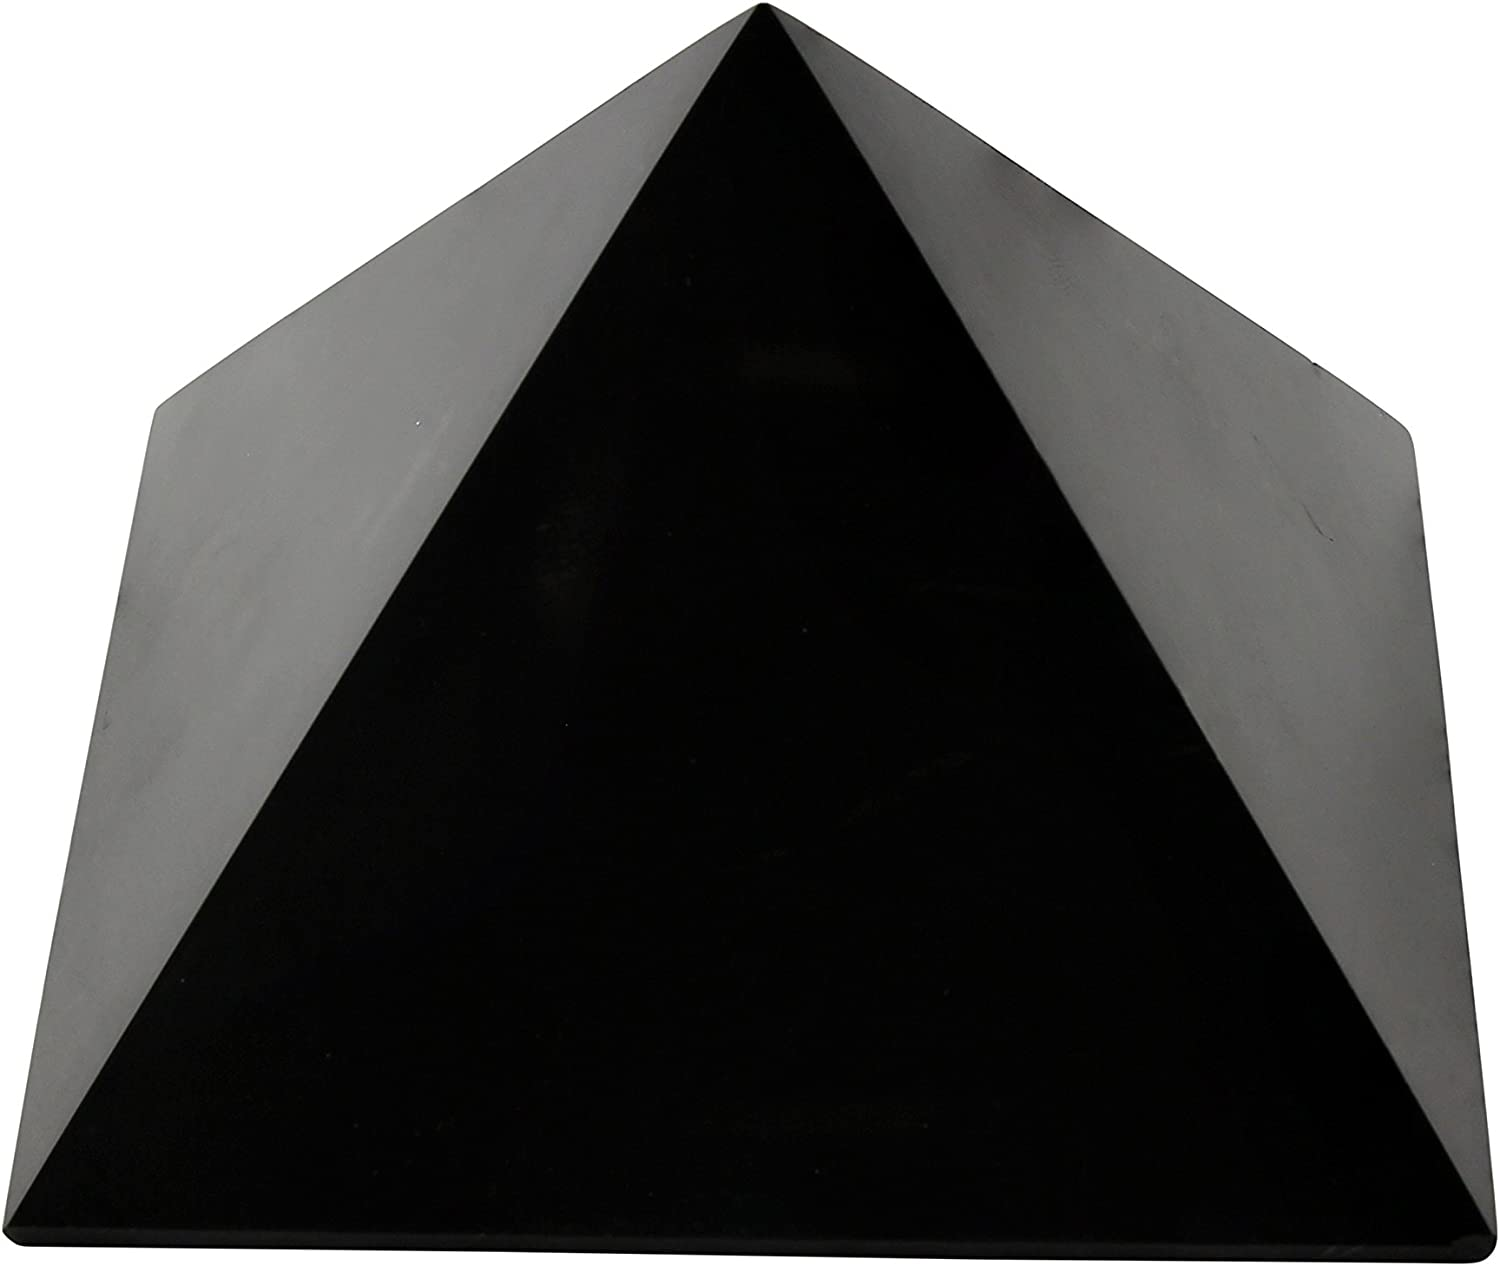 Polished Shungite Pyramid 4 Inches, Contains Carbon Fullerenes for EMF Protection | Authentic Anti-Radiation Shungite Stone Figures from Karelia, Russia | 4 Inch Pyramid, Polished